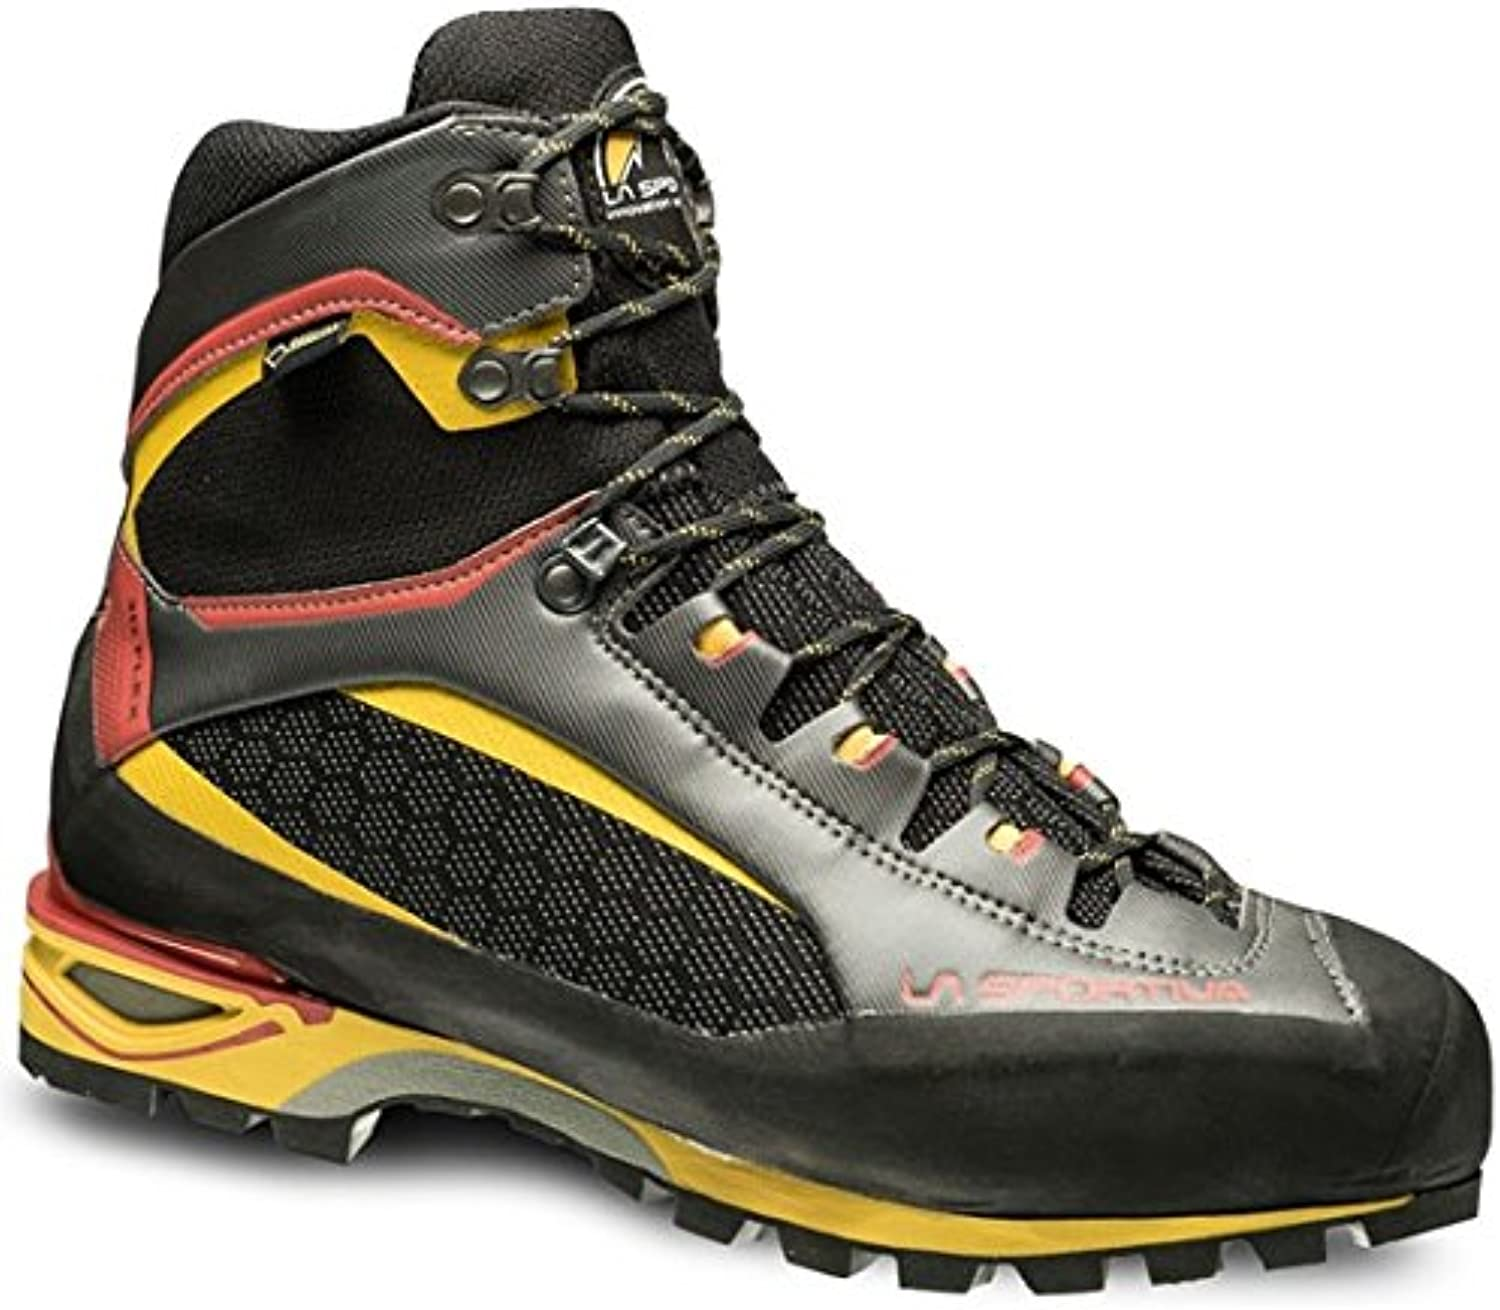 La Sportiva Trango Tower GTX – Black/Yellow  -